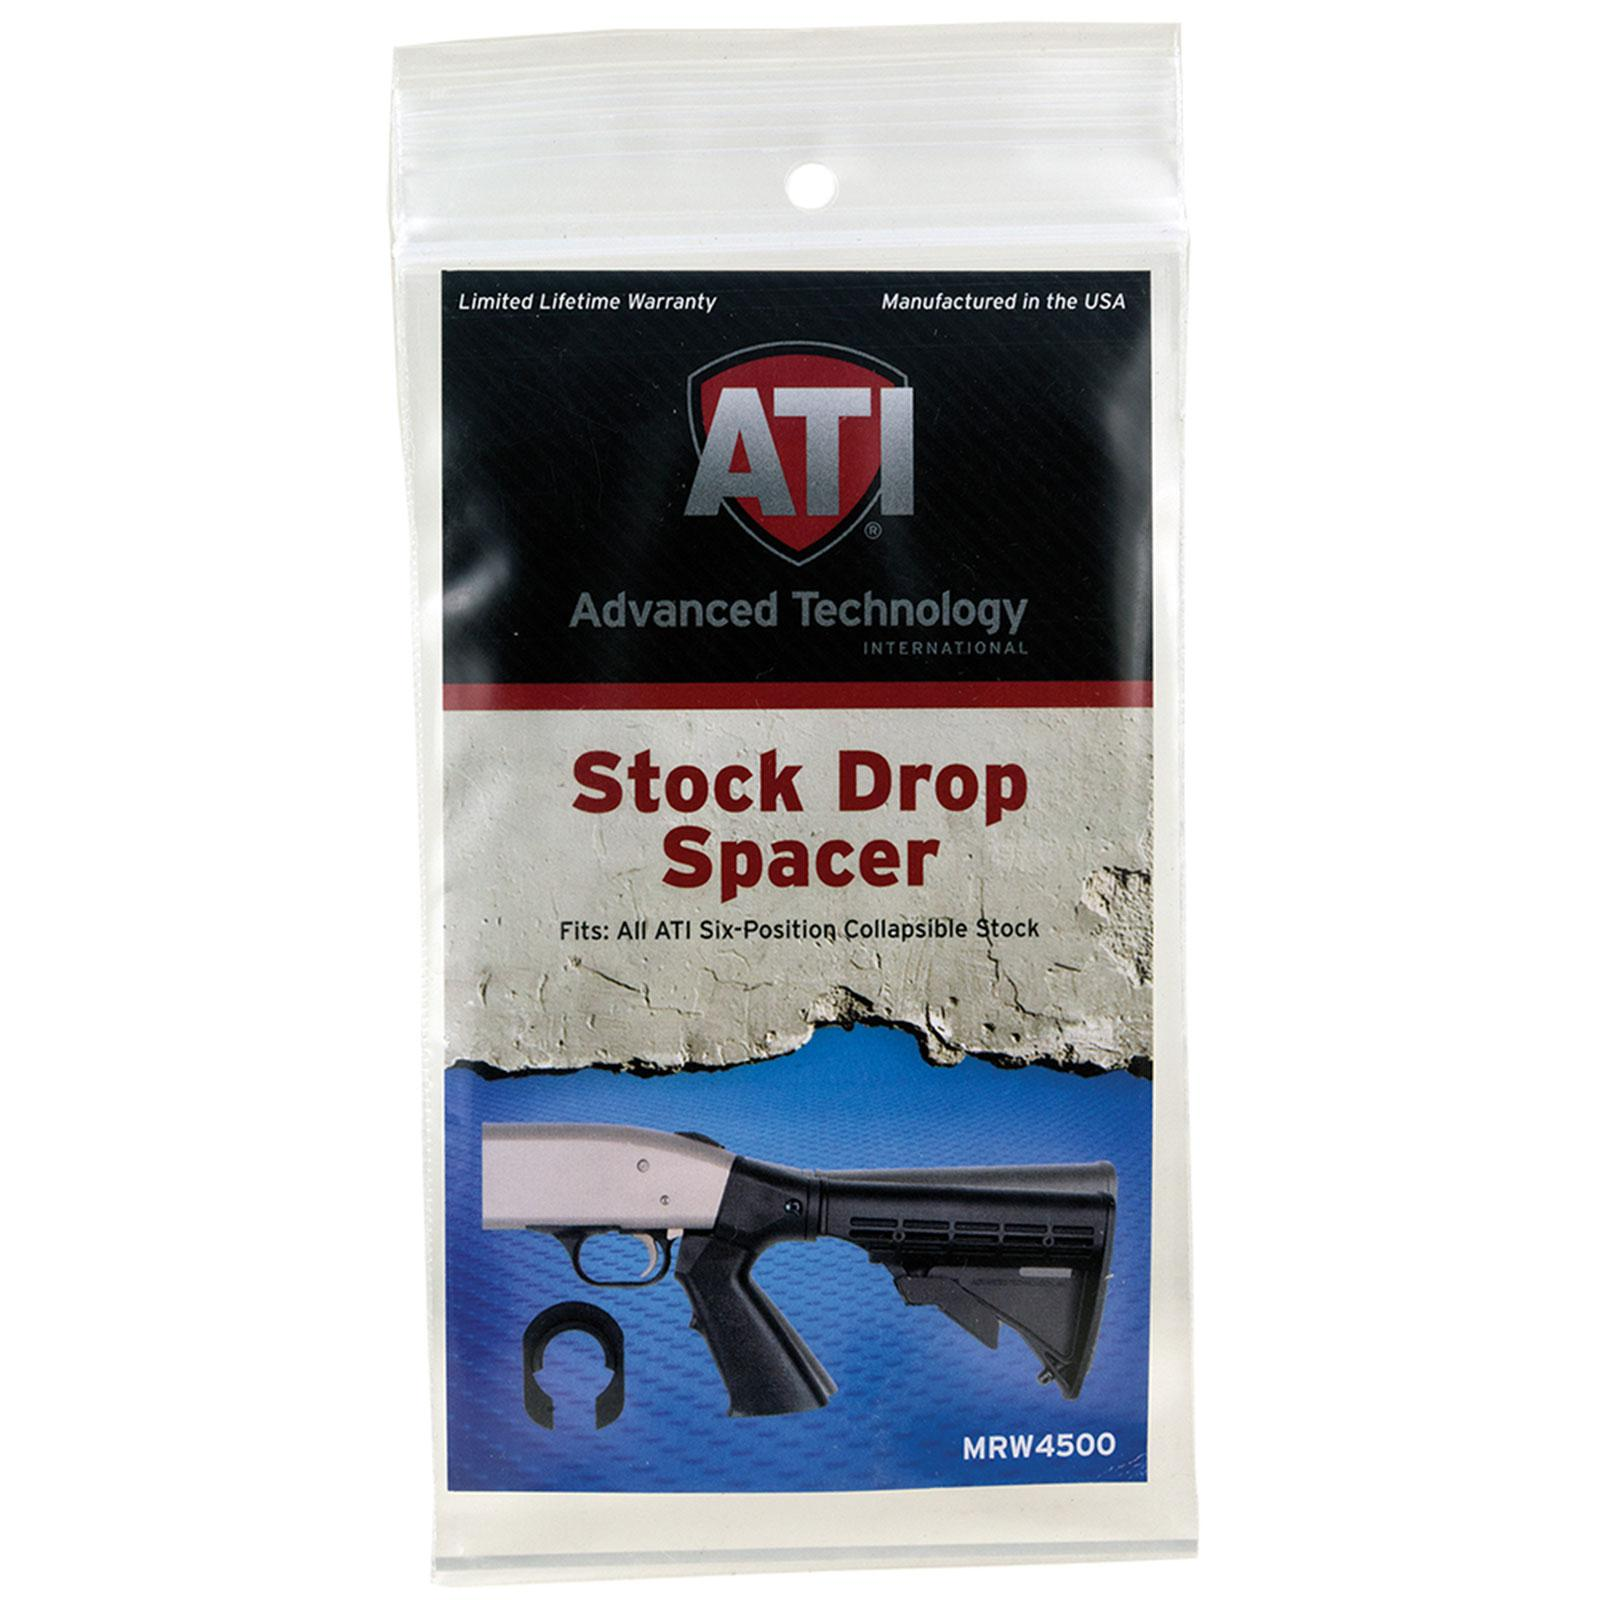 Image of Advanced Technology MRW4500 Stock Drop Spacer Glass Filled Nylon, Black